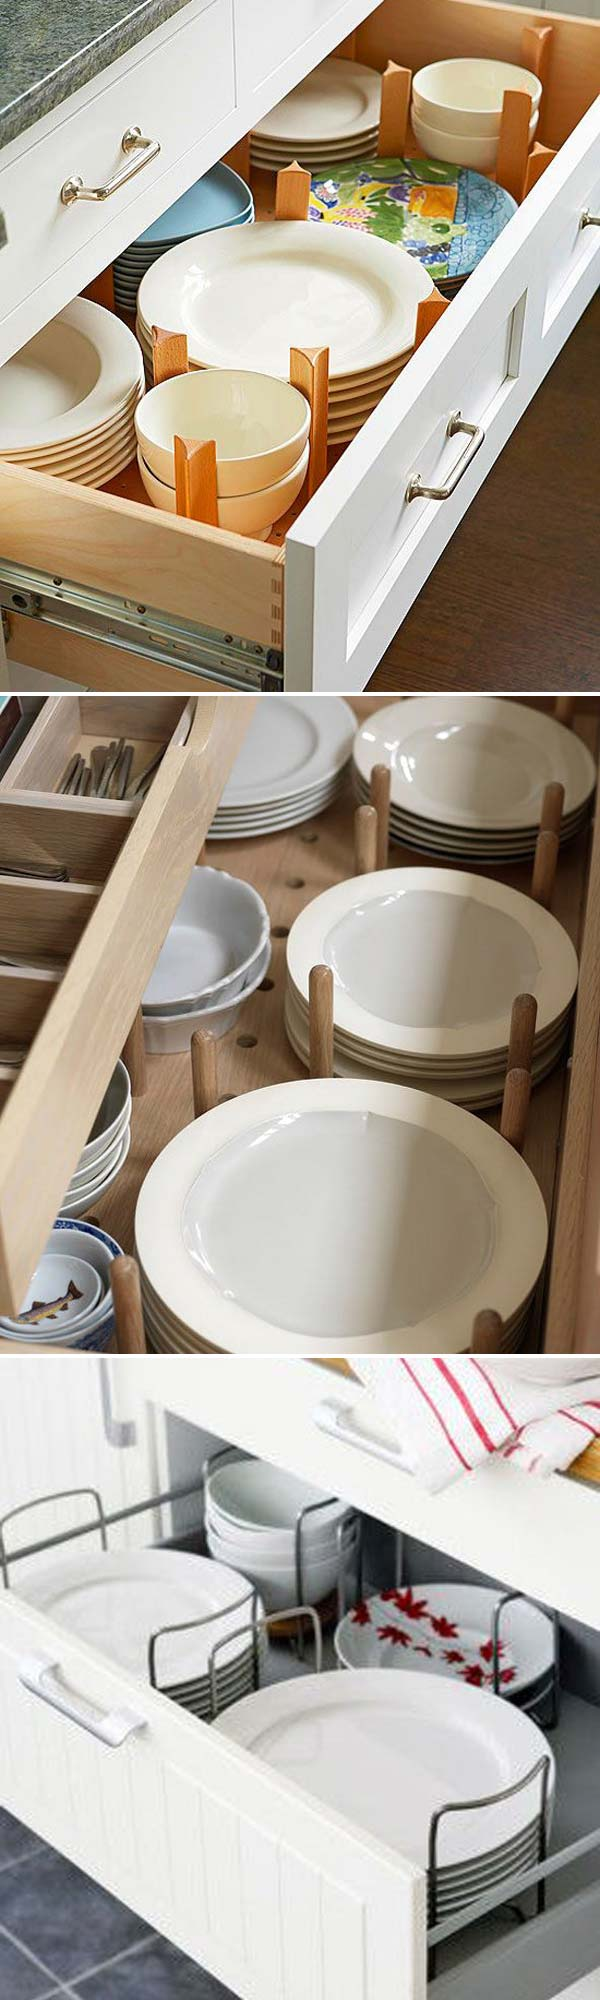 Use pegs to organize the dishes and to keep them in place.